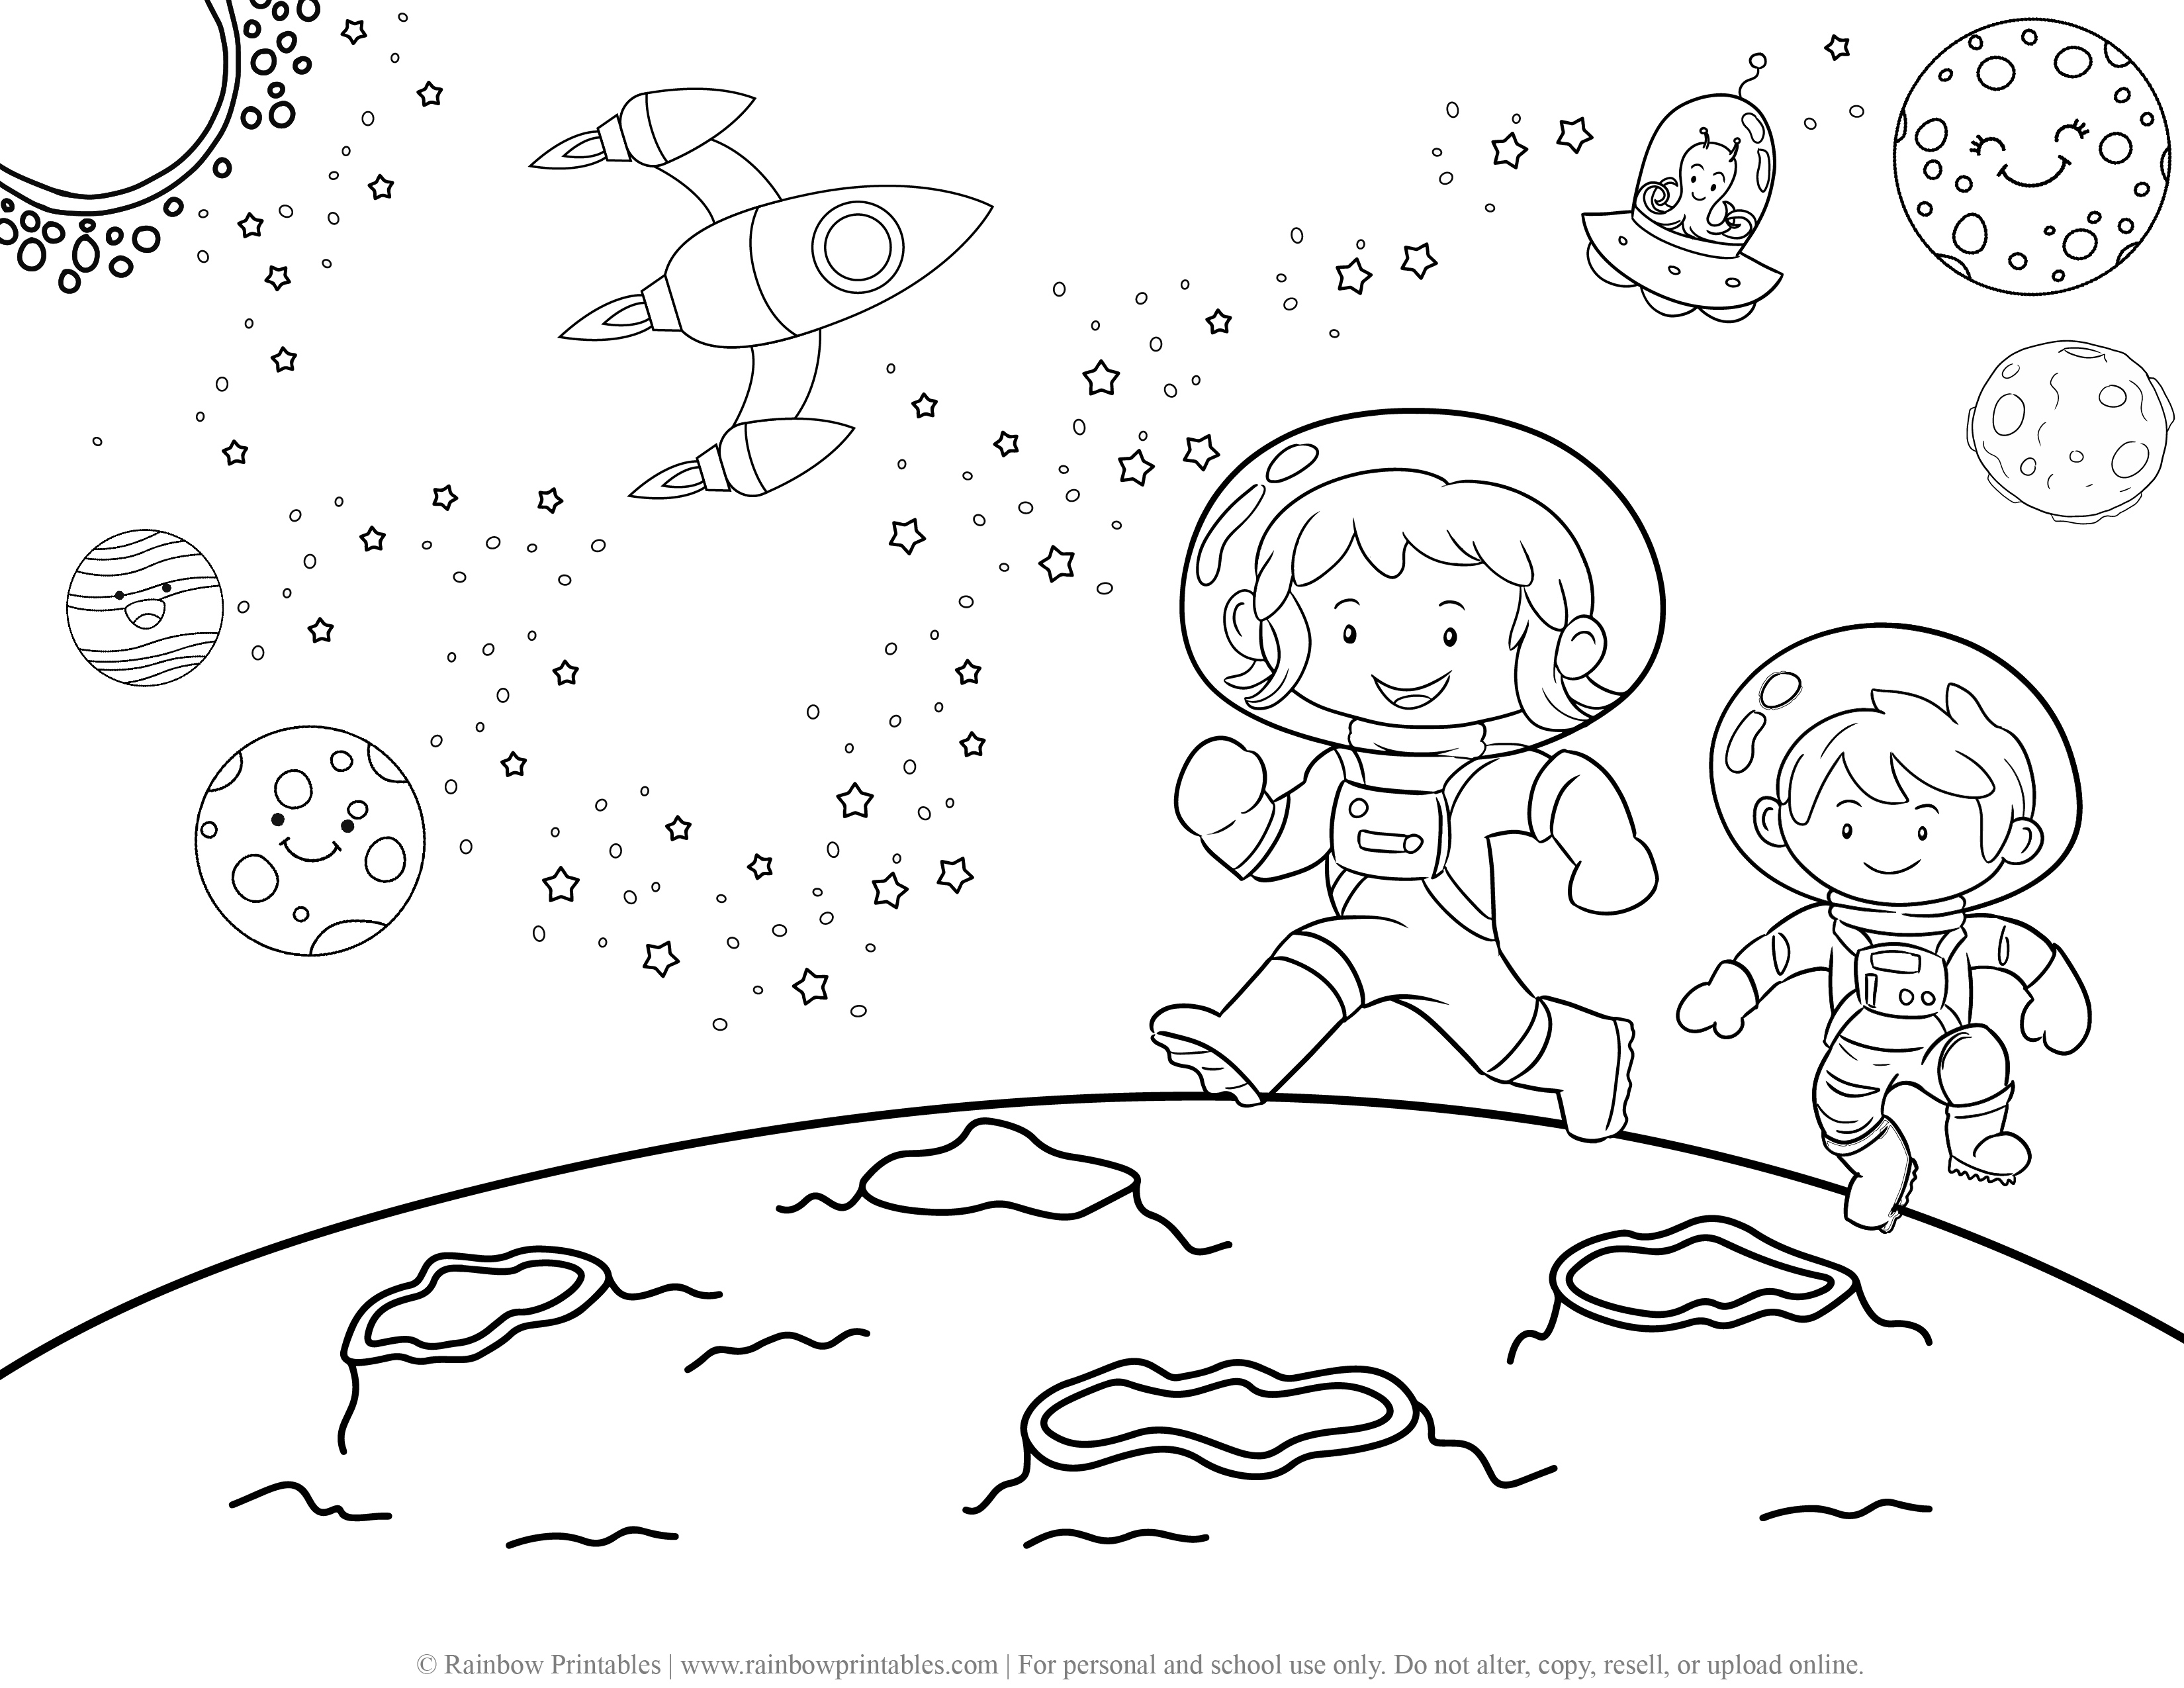 Rocketship Space Galaxy Planet Outerspace Astronaut Moon Coloring Page